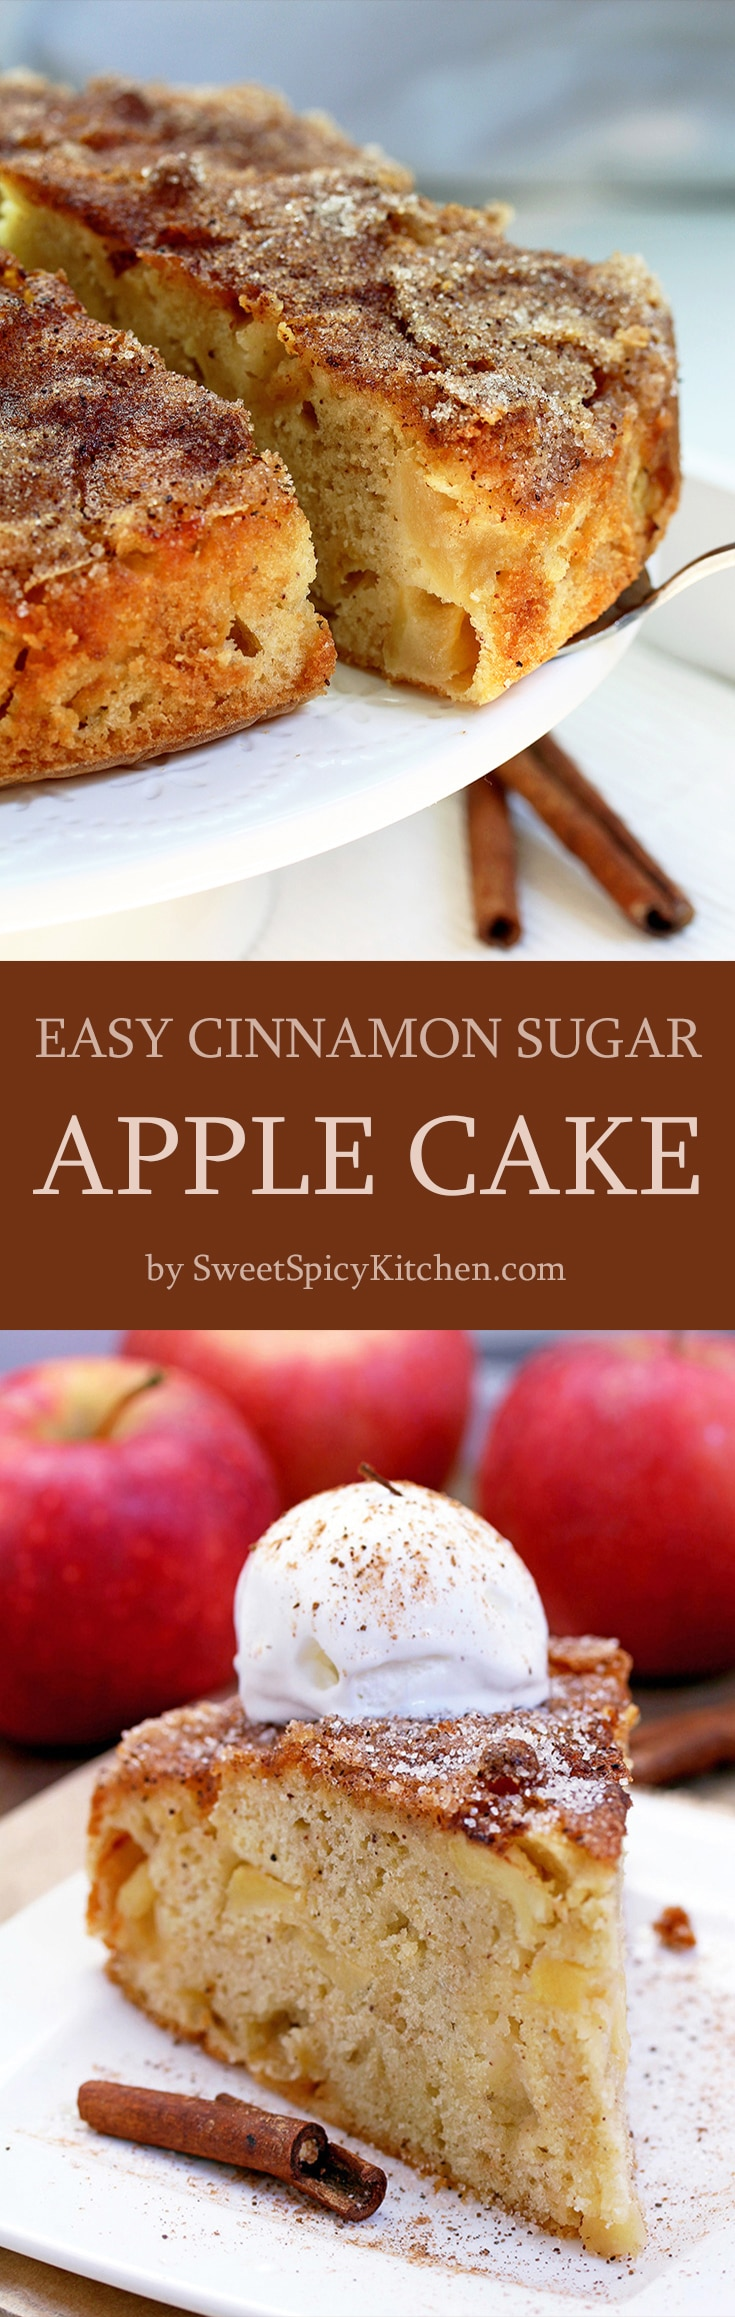 Easy Cinnamon Sugar Apple Cake – a soft cake filled with juicy apples, topped with cinnamon and sugar. This is a real fall treat.